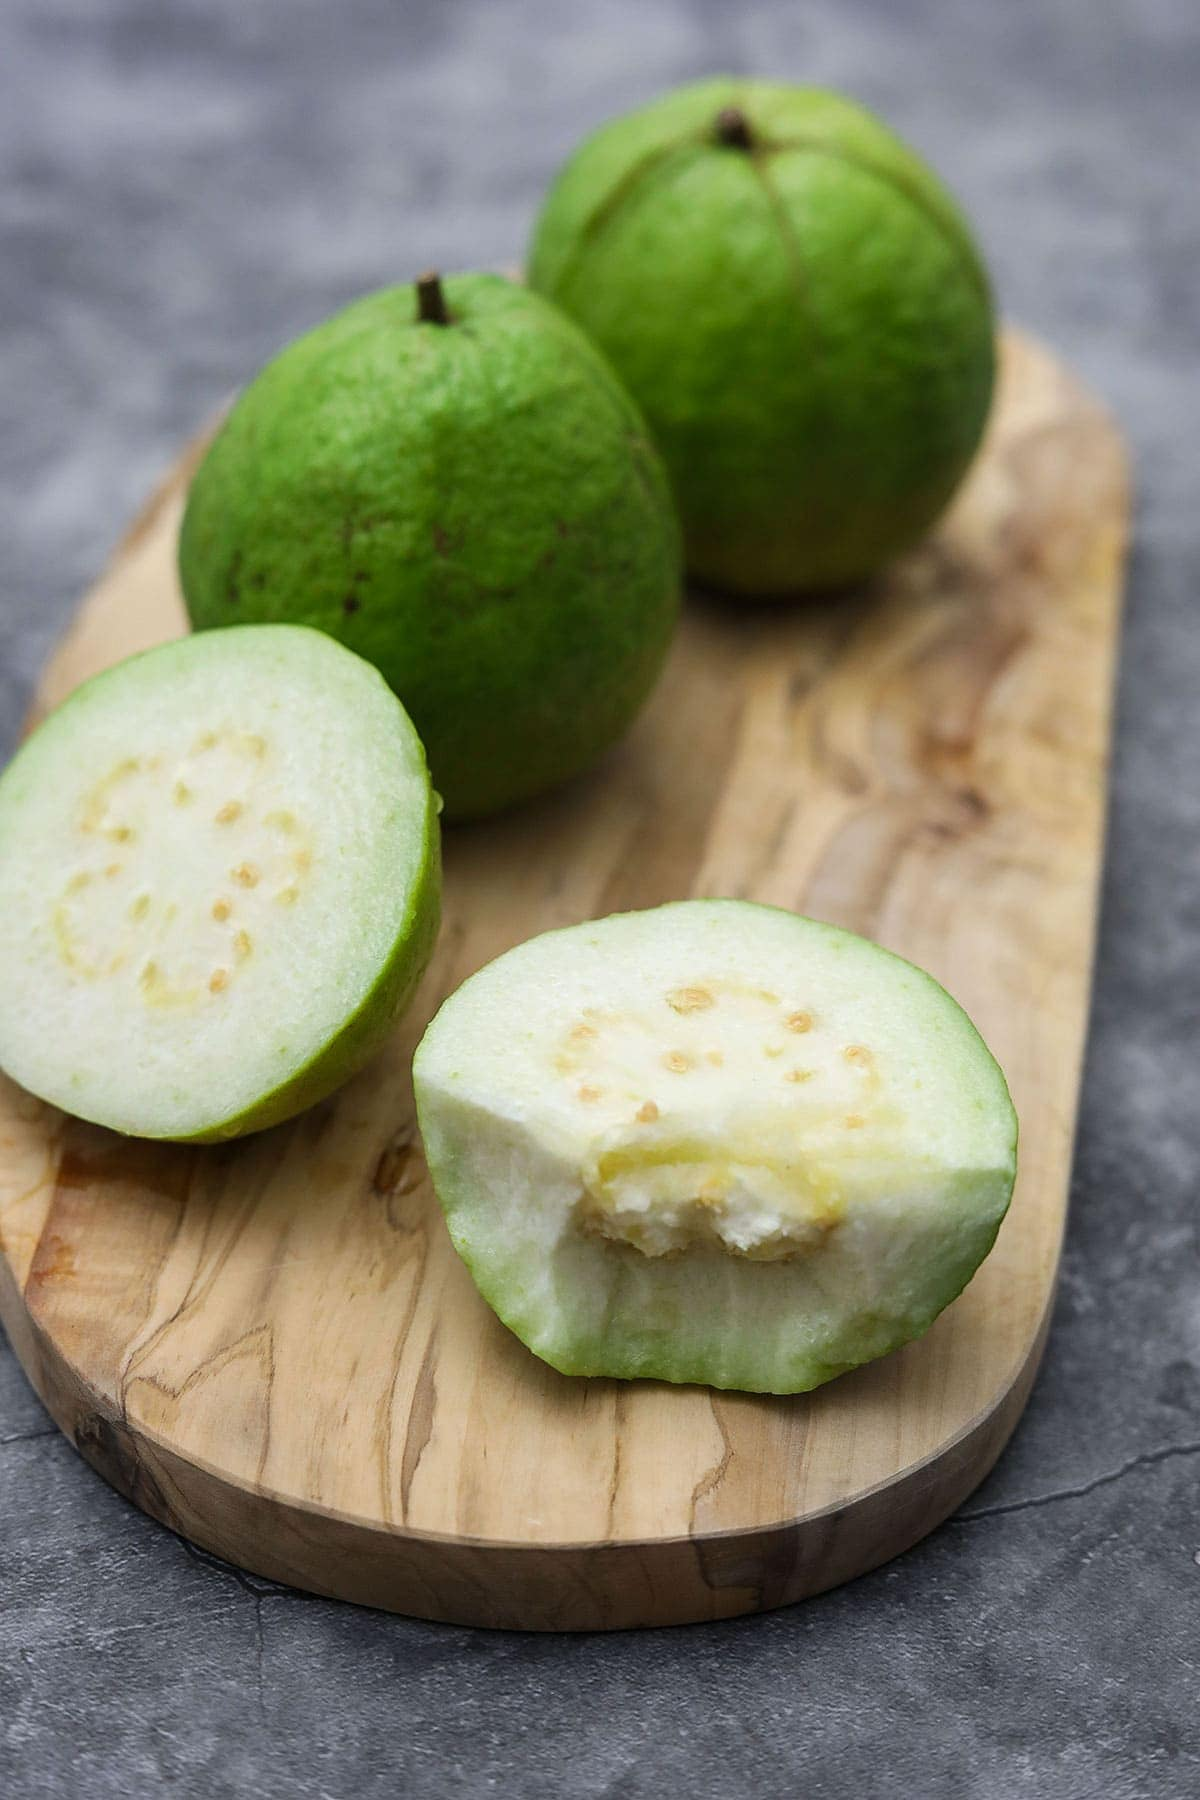 white guava on cutting board, one cut open to show its white flesh